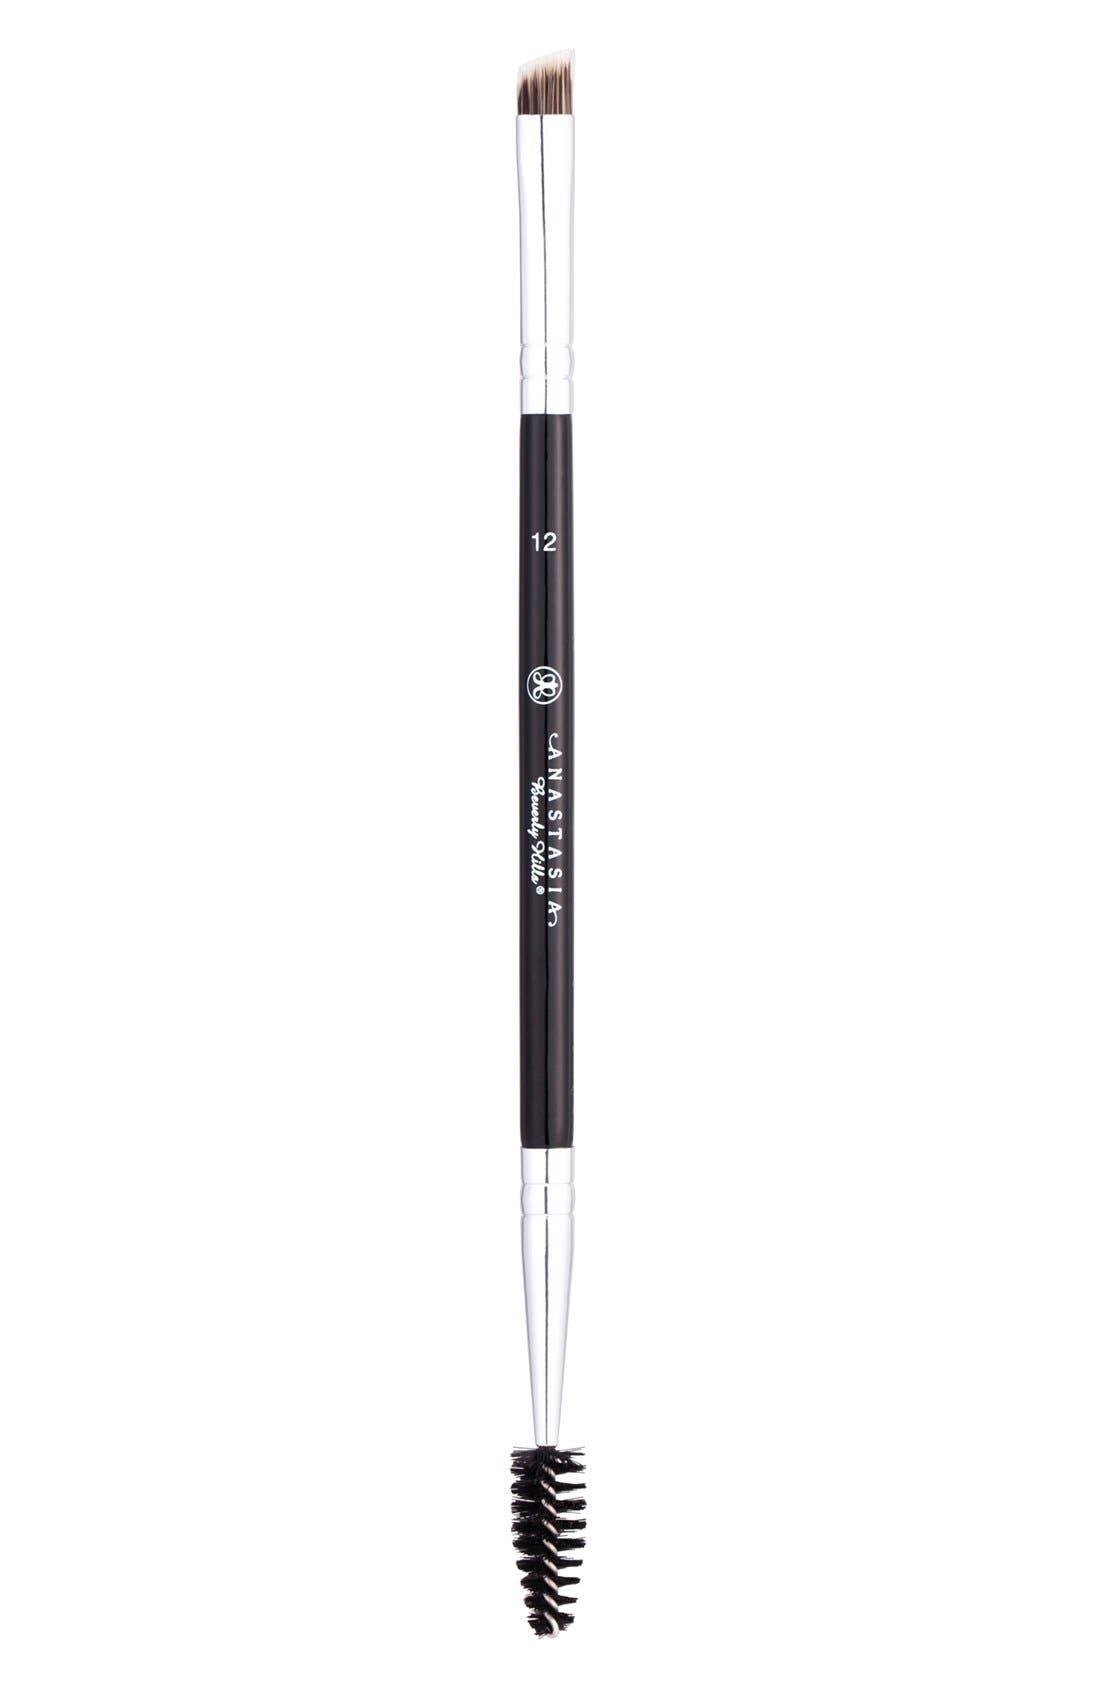 Anastasia Beverly Hills #12 Large Synthetic Duo Brow Brush